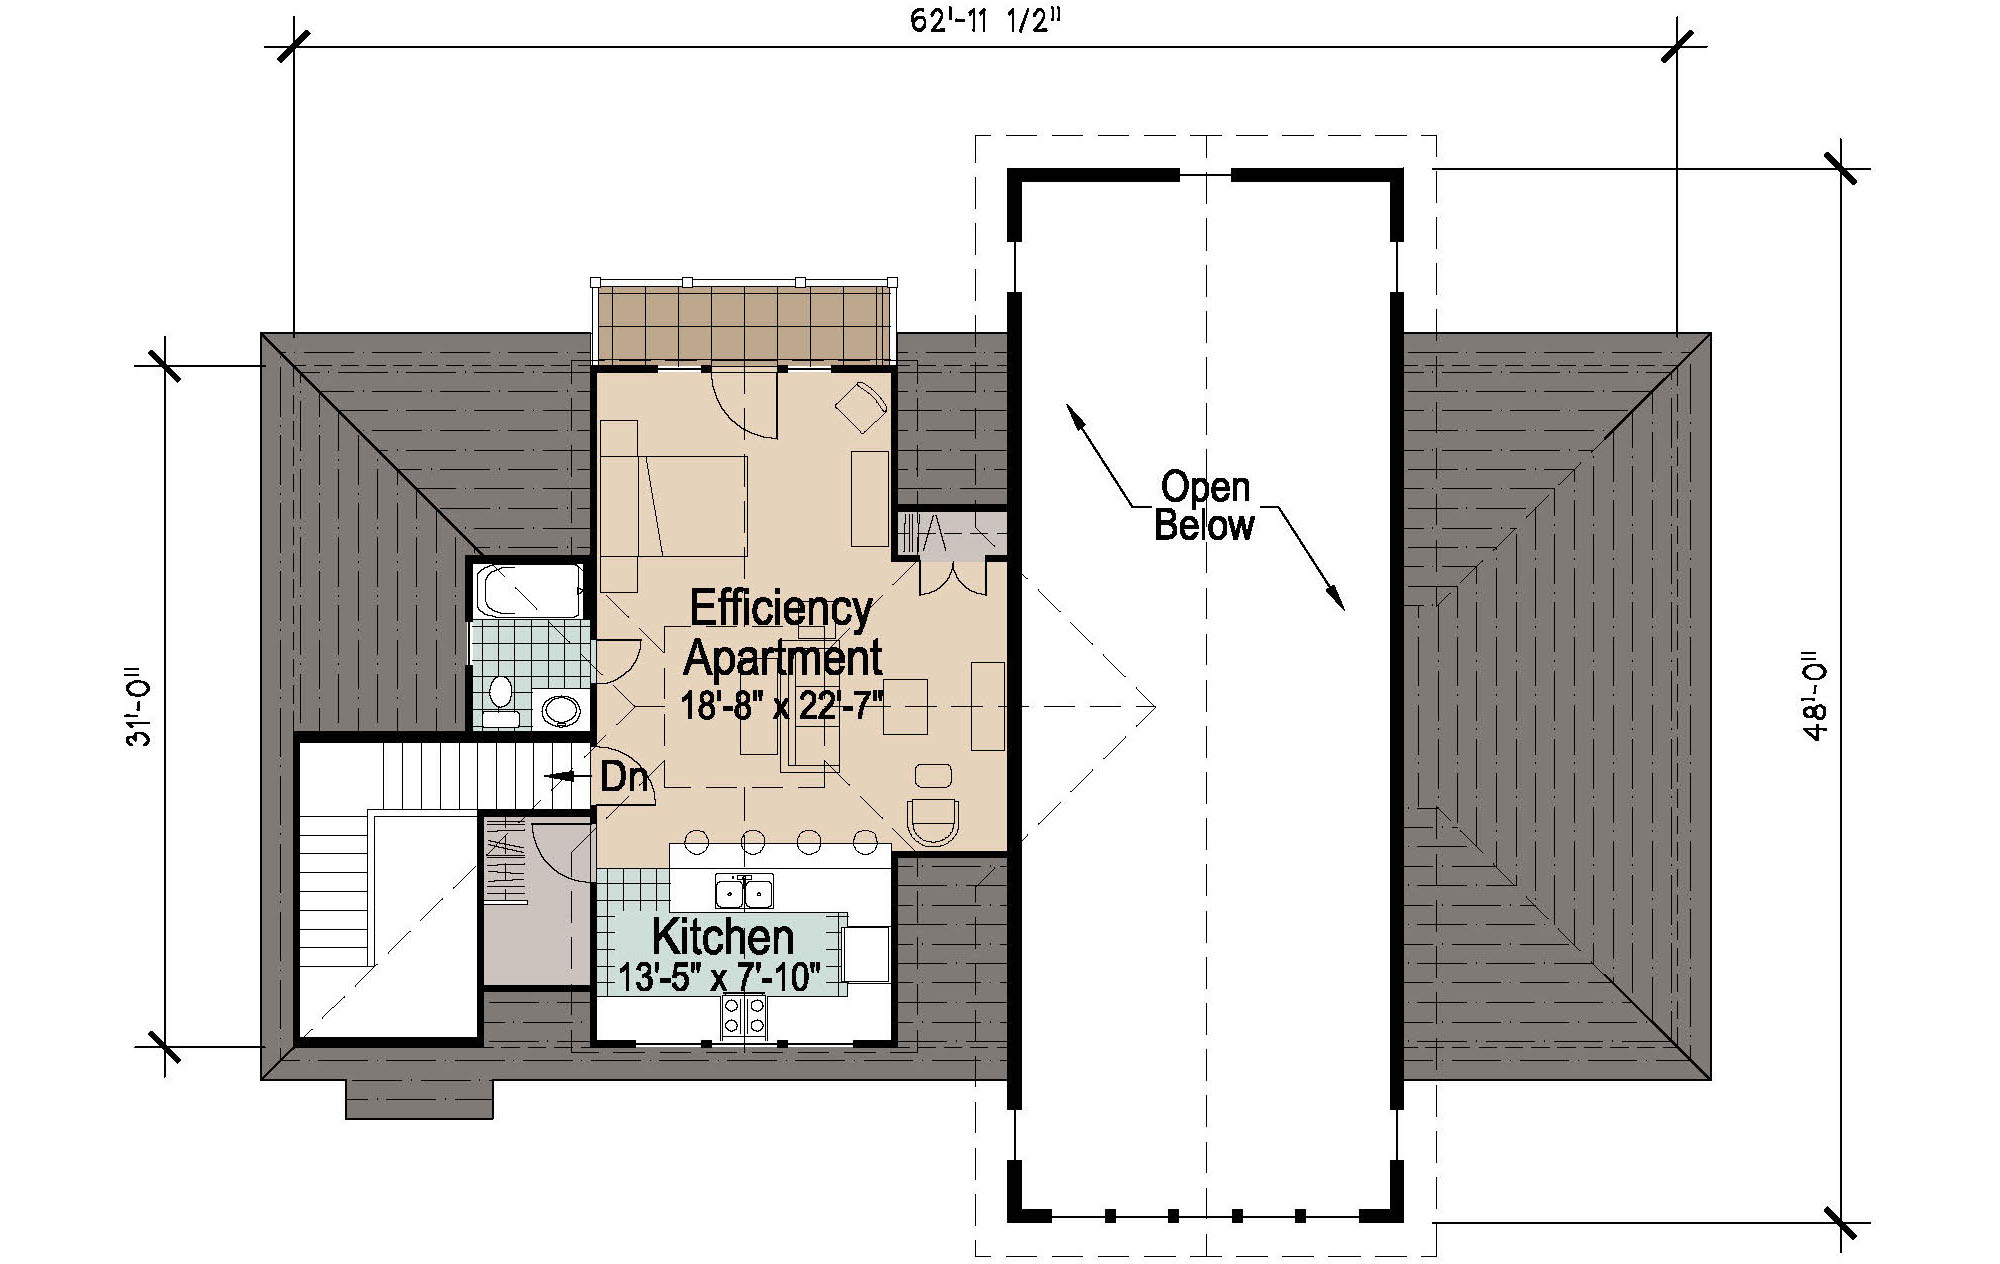 Small House Plans 200 Sq Ft moreover Useful Wood Bench Small Cottage House in addition Tiny House Plans Under 300 Sq Ft On S furthermore 3 Bedroom 2 Bath House Plans 250 as well Beach House Plans On Narrow Lots. on 250 square feet tiny house floor plan